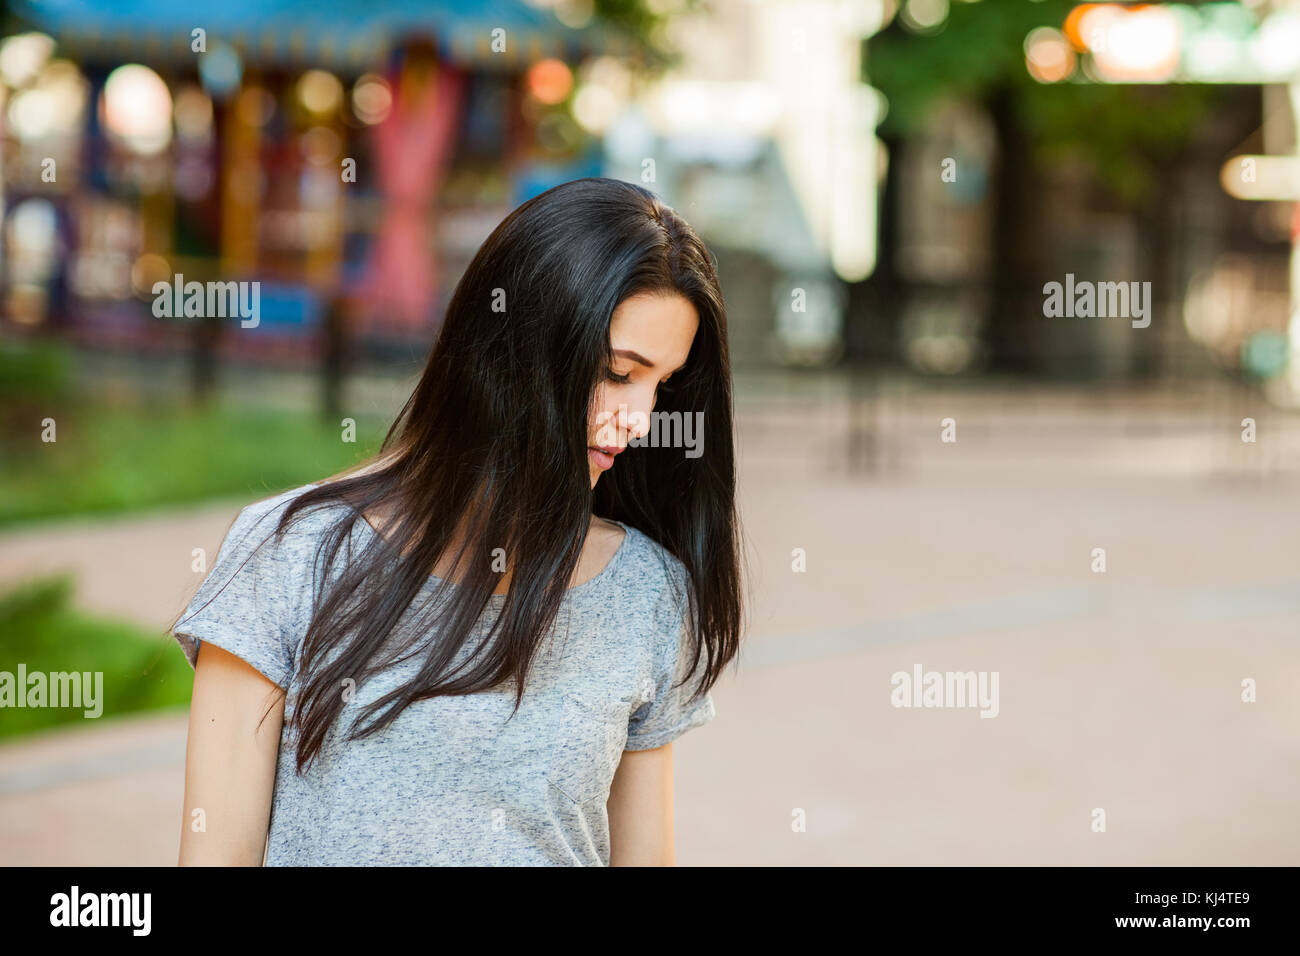 thoughtfull female in the street - Stock Image